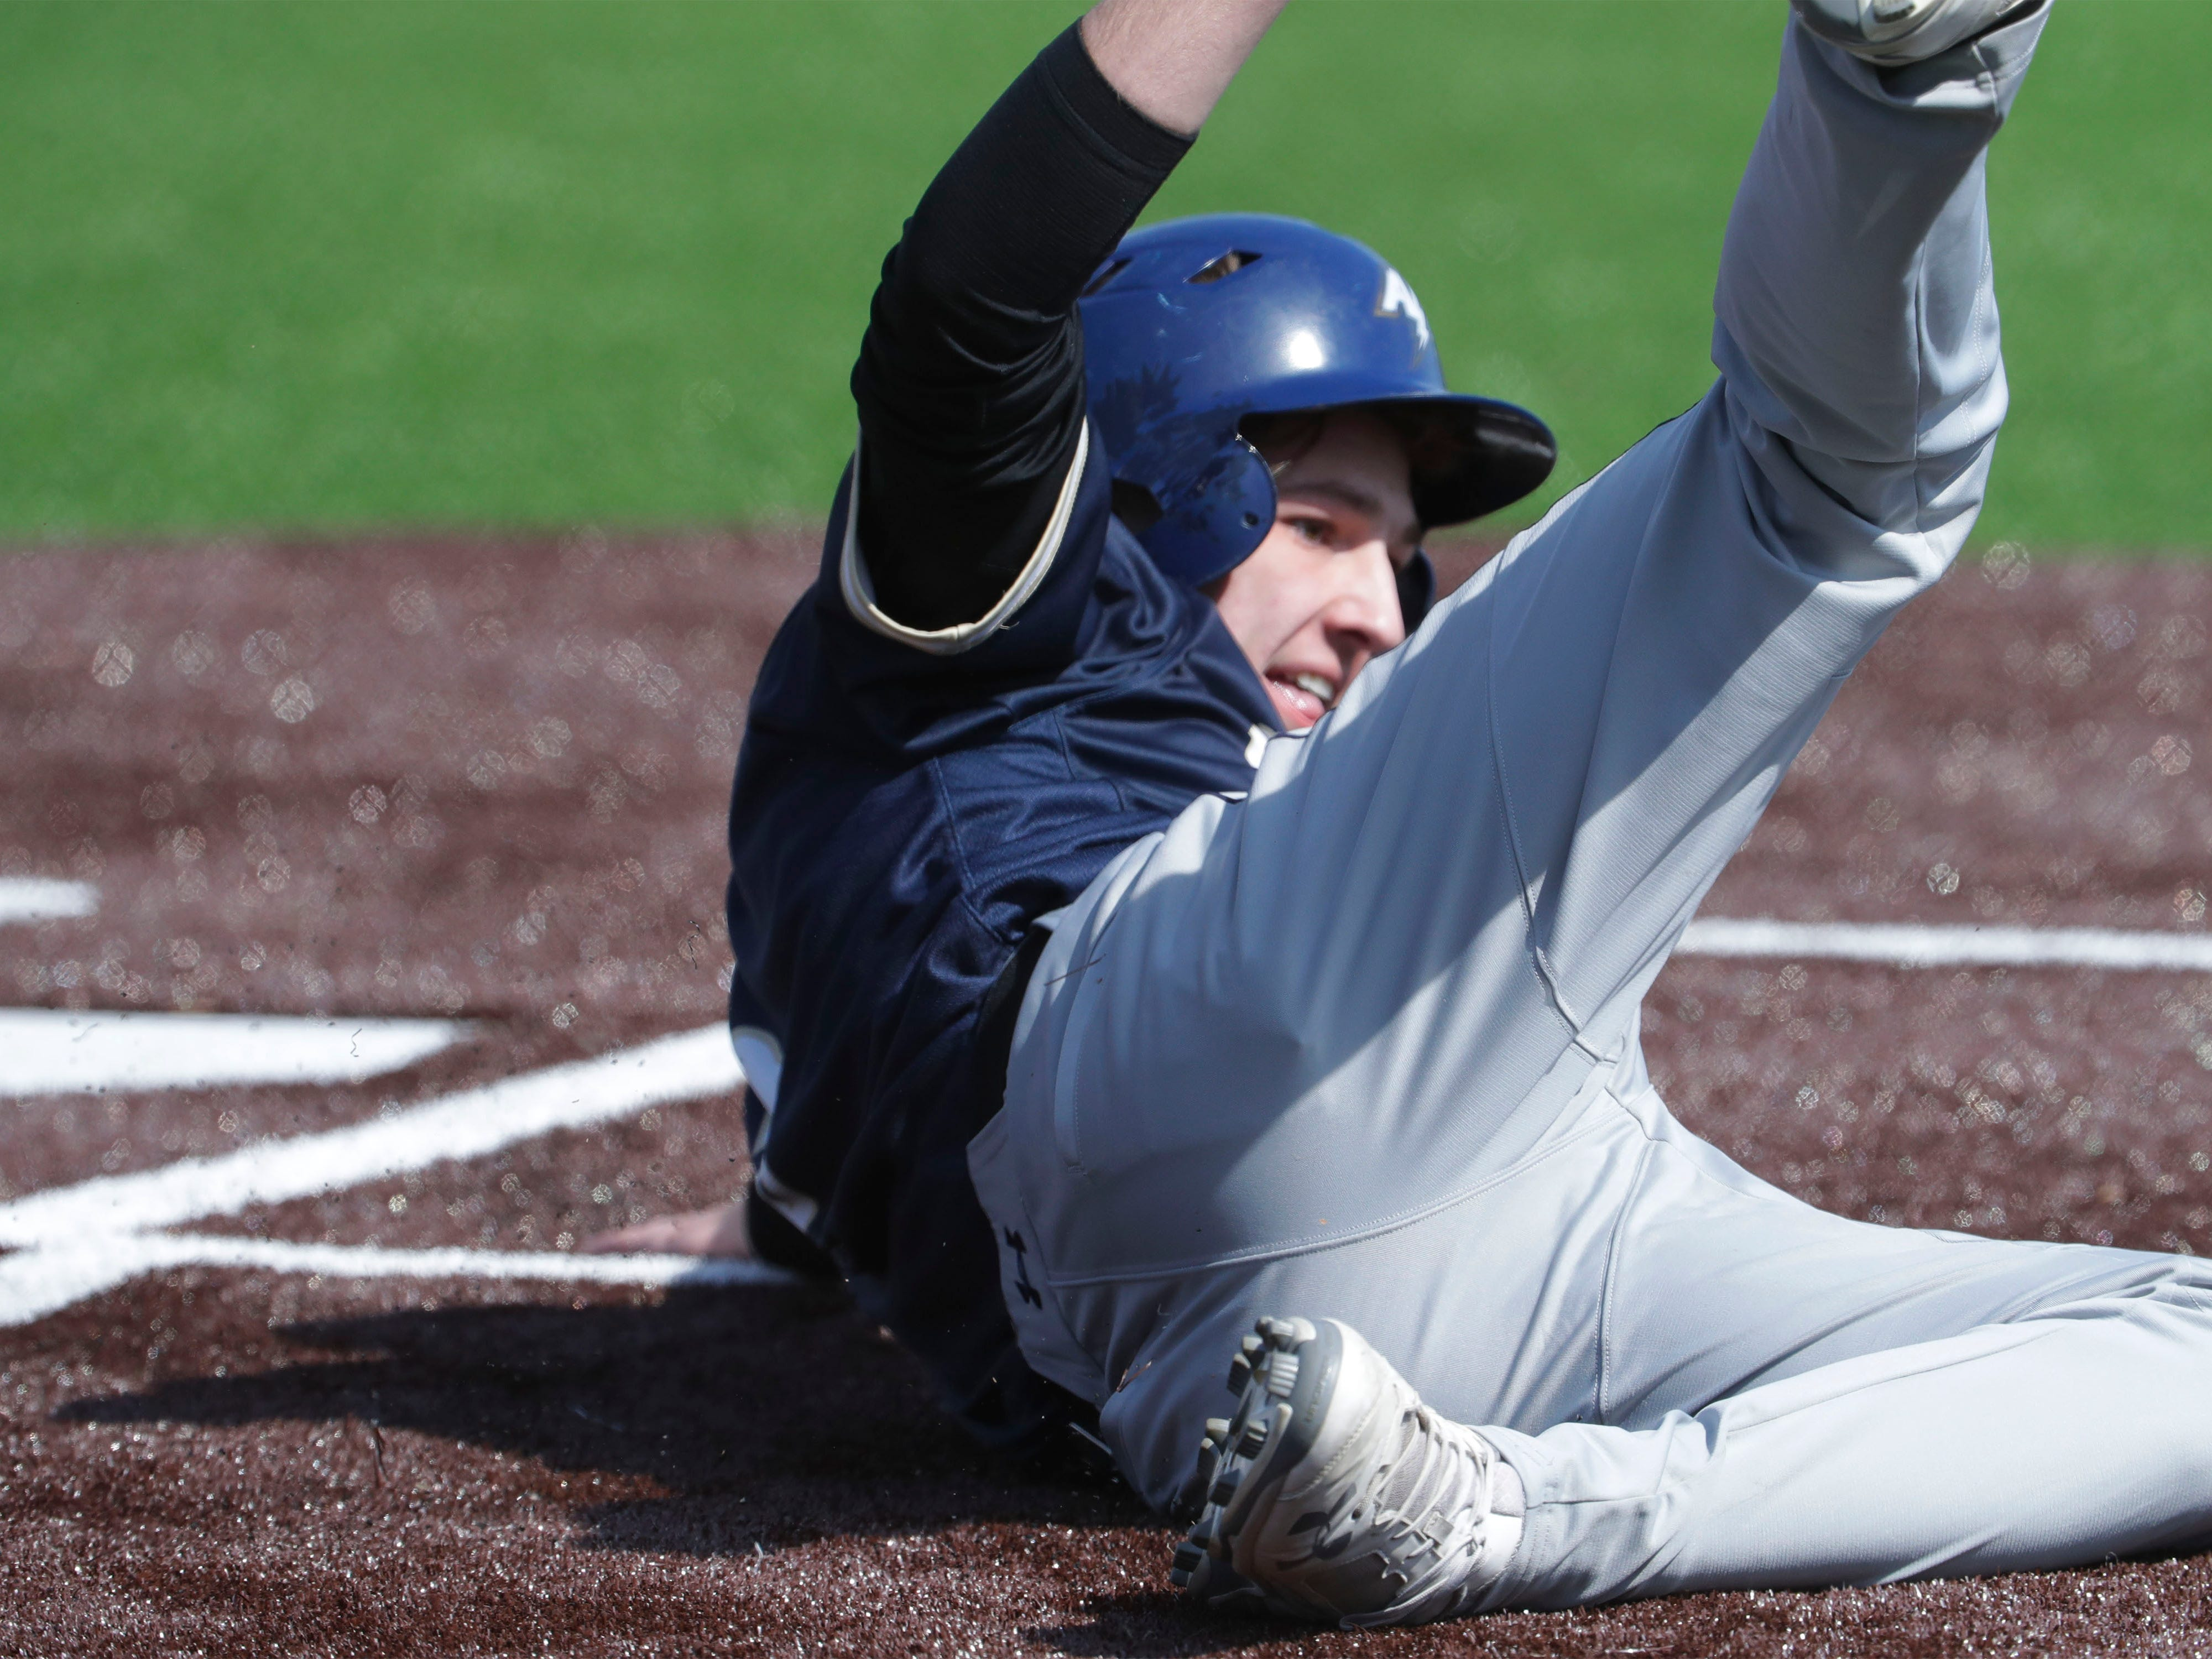 Appleton North's Max Martine (5) slides into home during action with Sheboygan North, Friday, March 29, 2019, at the Field of Dreams complex in Sheboygan, Wis.